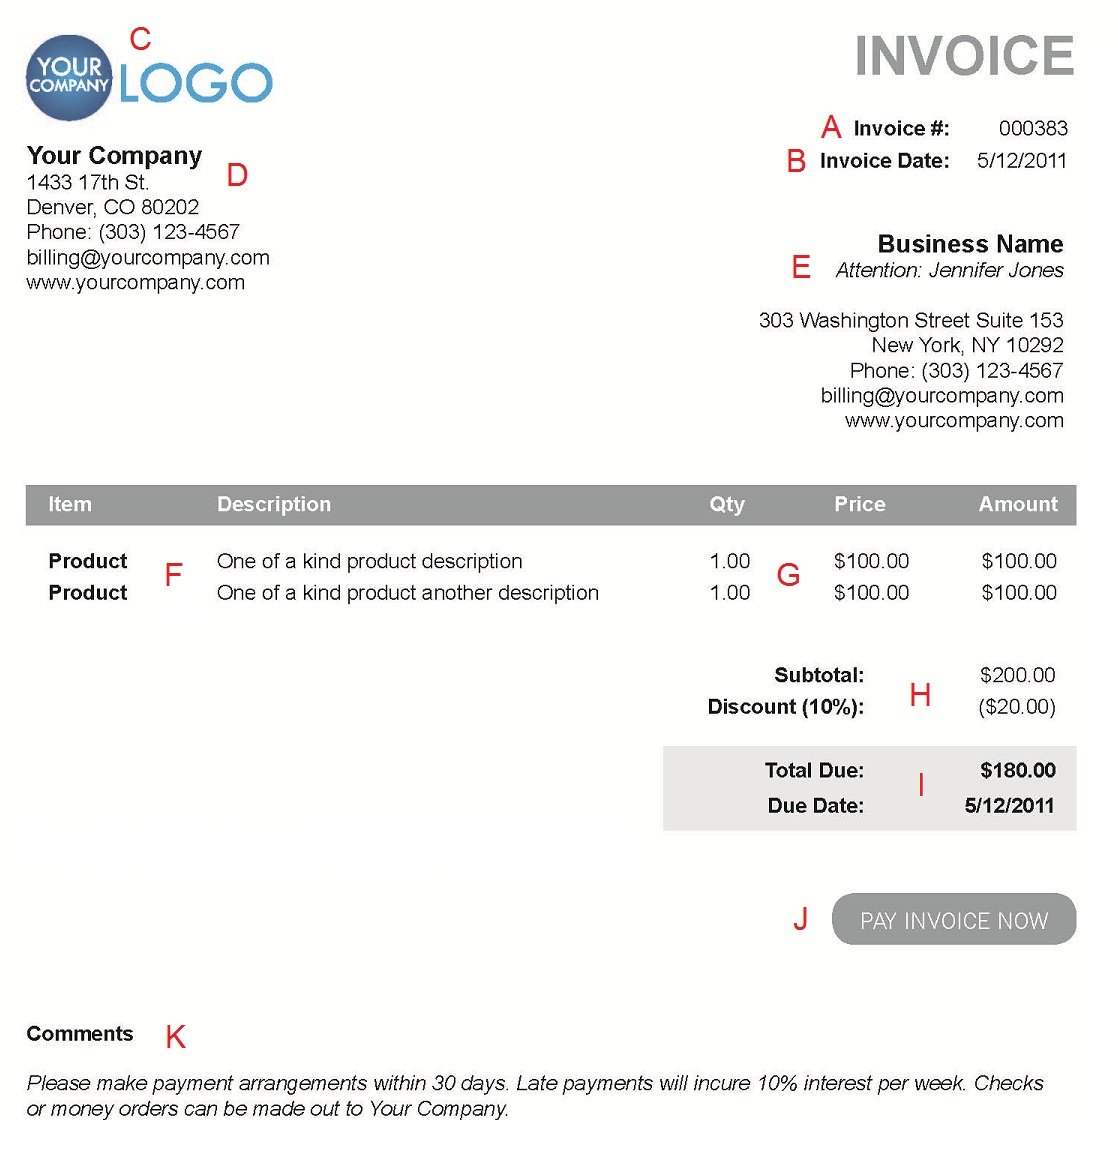 Soulfulpowerus  Inspiring The  Different Sections Of An Electronic Payment Invoice With Lovely A  With Comely Receipt Designs Also I Acknowledge Receipt Of Your Letter In Addition Receipt Paypal And Receipt Free As Well As Examples Of A Receipt Additionally Travel Receipt Template From Paysimplecom With Soulfulpowerus  Lovely The  Different Sections Of An Electronic Payment Invoice With Comely A  And Inspiring Receipt Designs Also I Acknowledge Receipt Of Your Letter In Addition Receipt Paypal From Paysimplecom